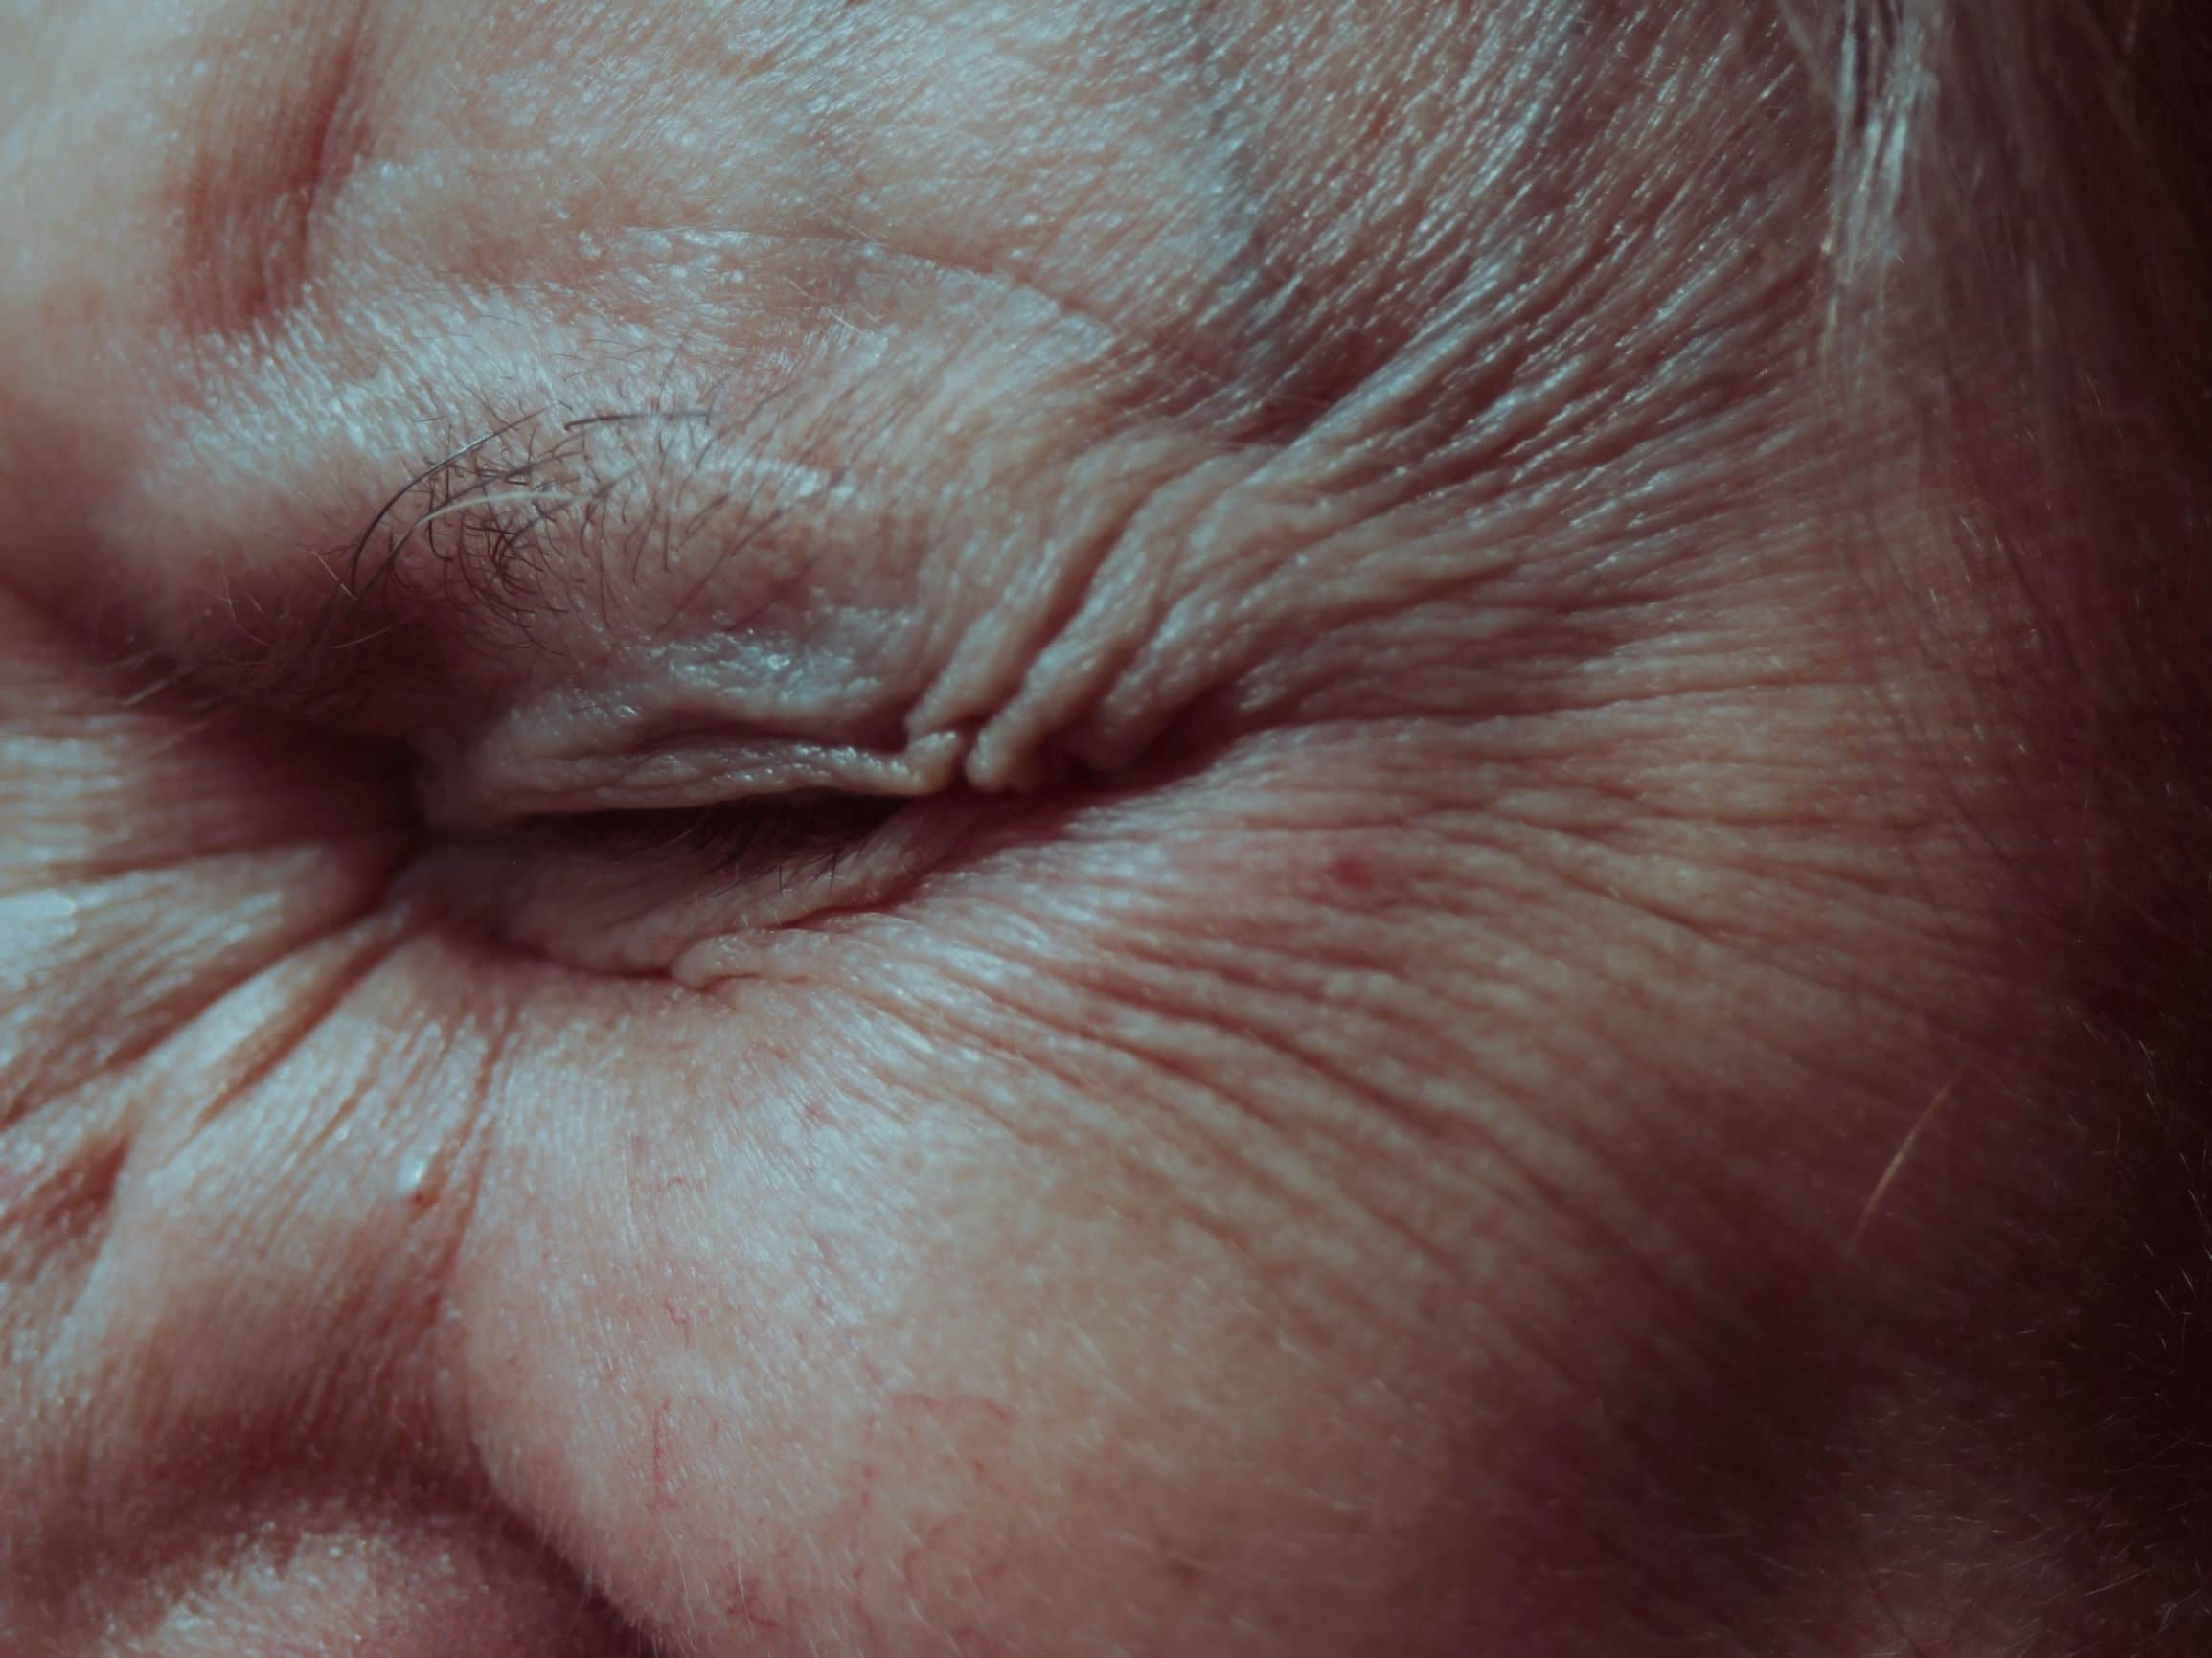 wrinkles and skin aging caused by lack of sleep